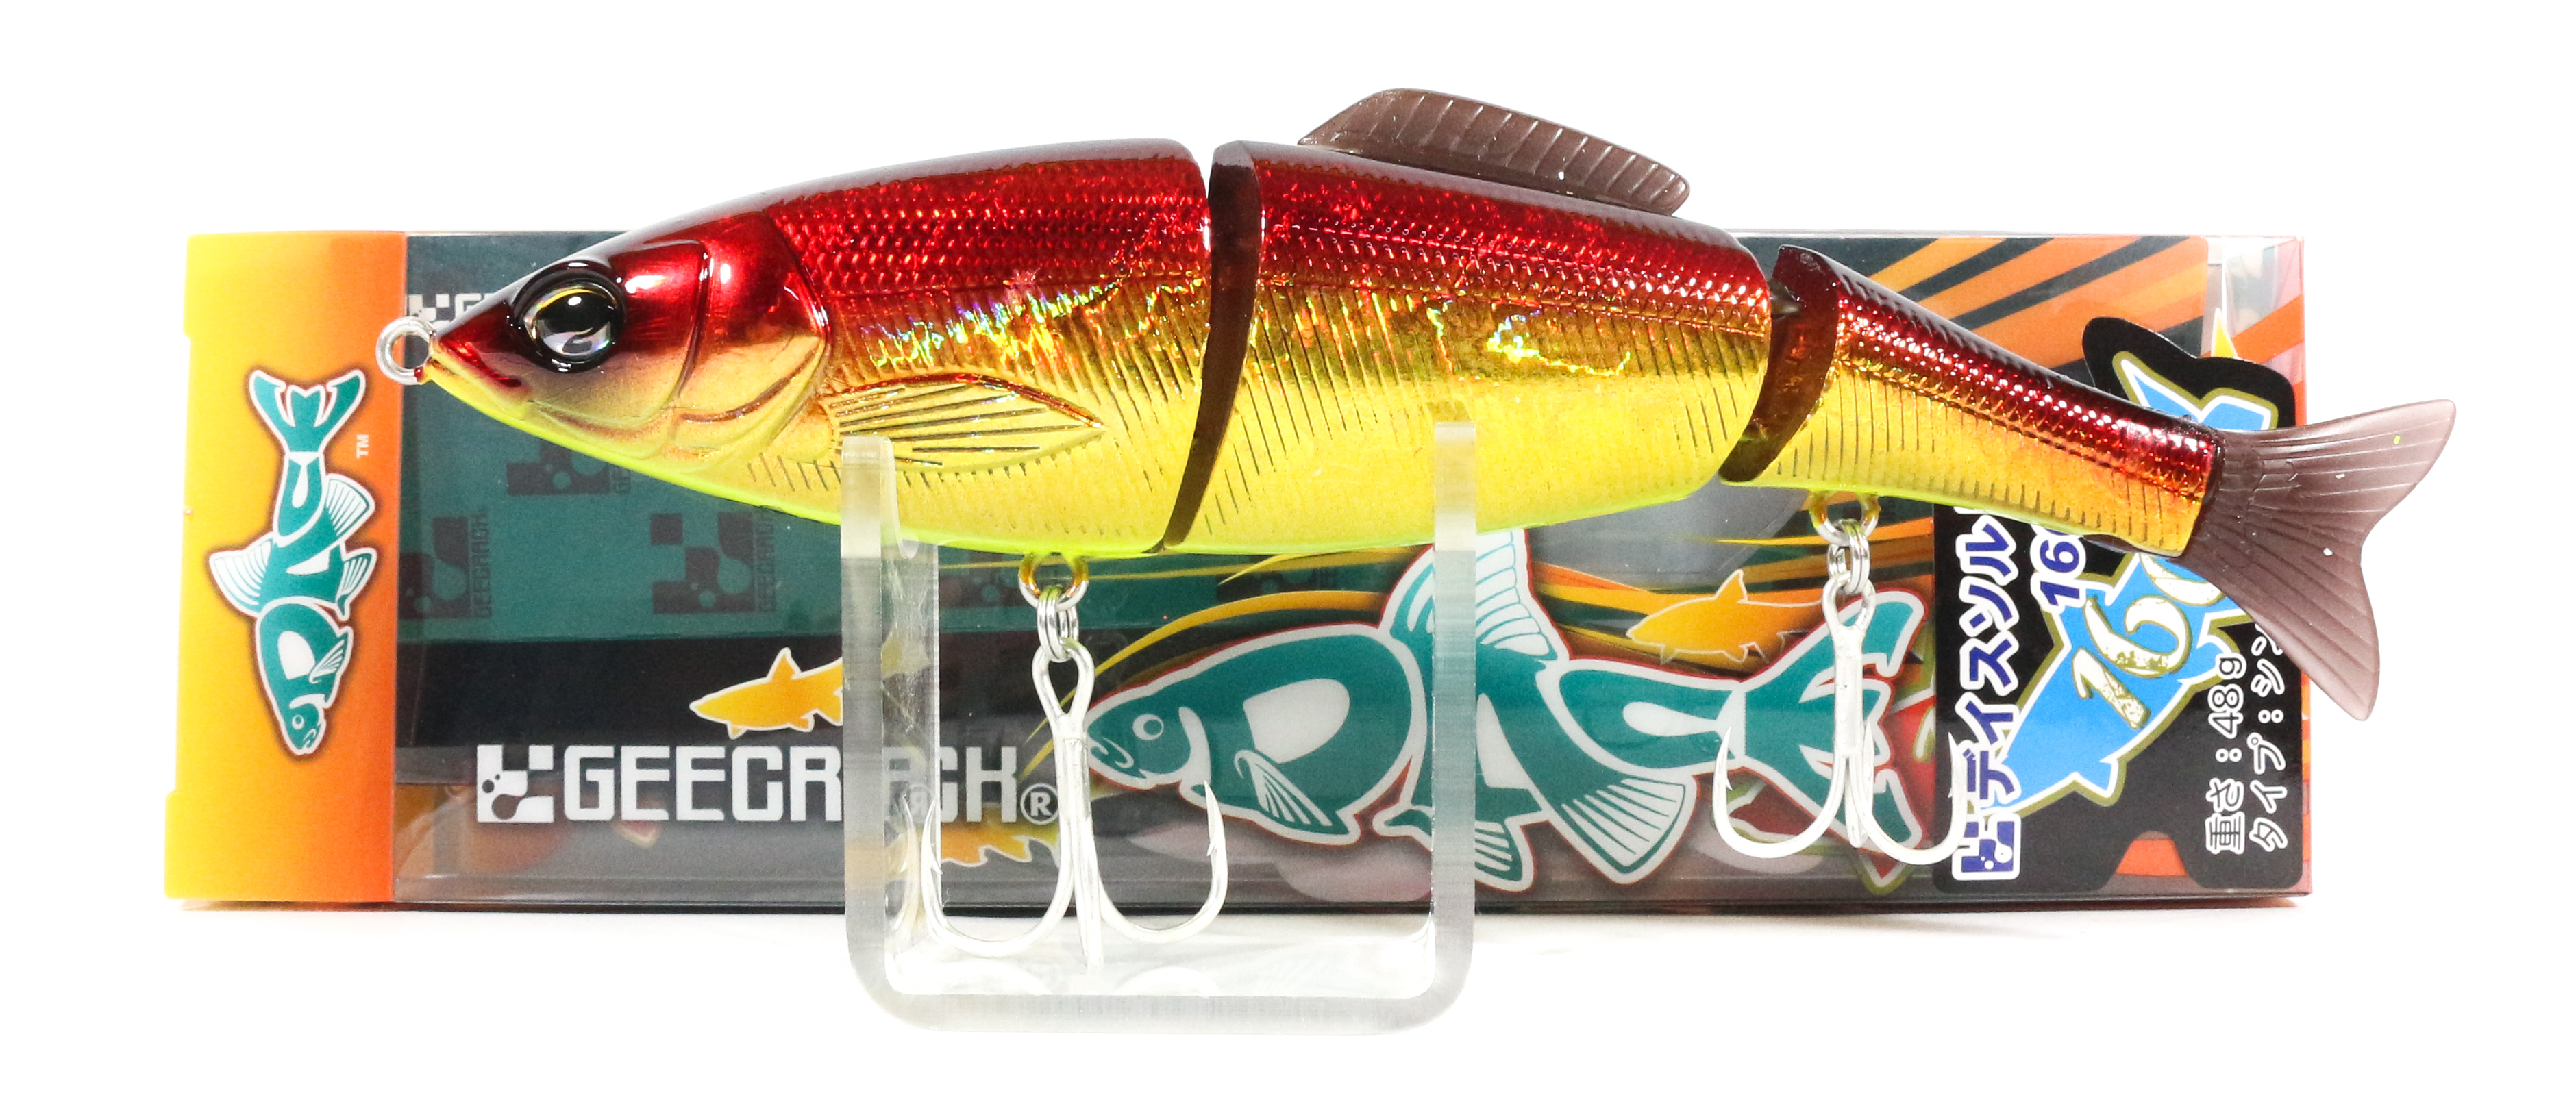 Sale Gee Crack Dace Salt 160S Jointed Sinking Lure 003 (8003)